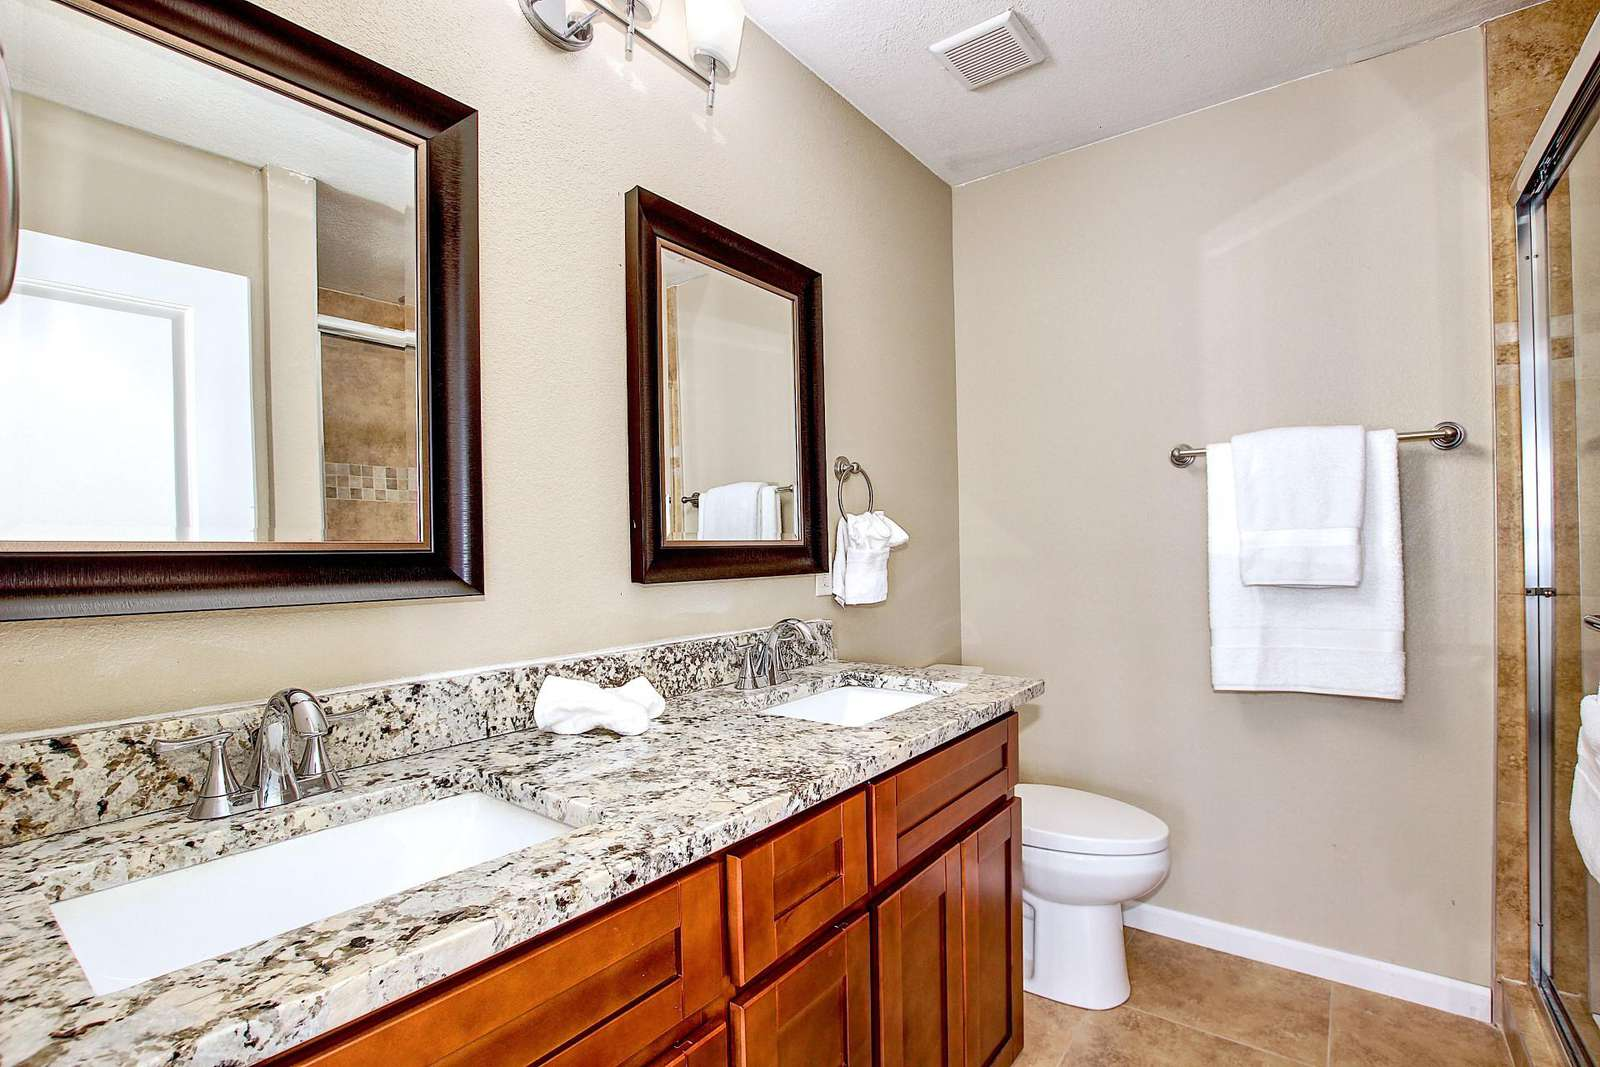 5th bedroom bath has a double vanity and large walk in shower.